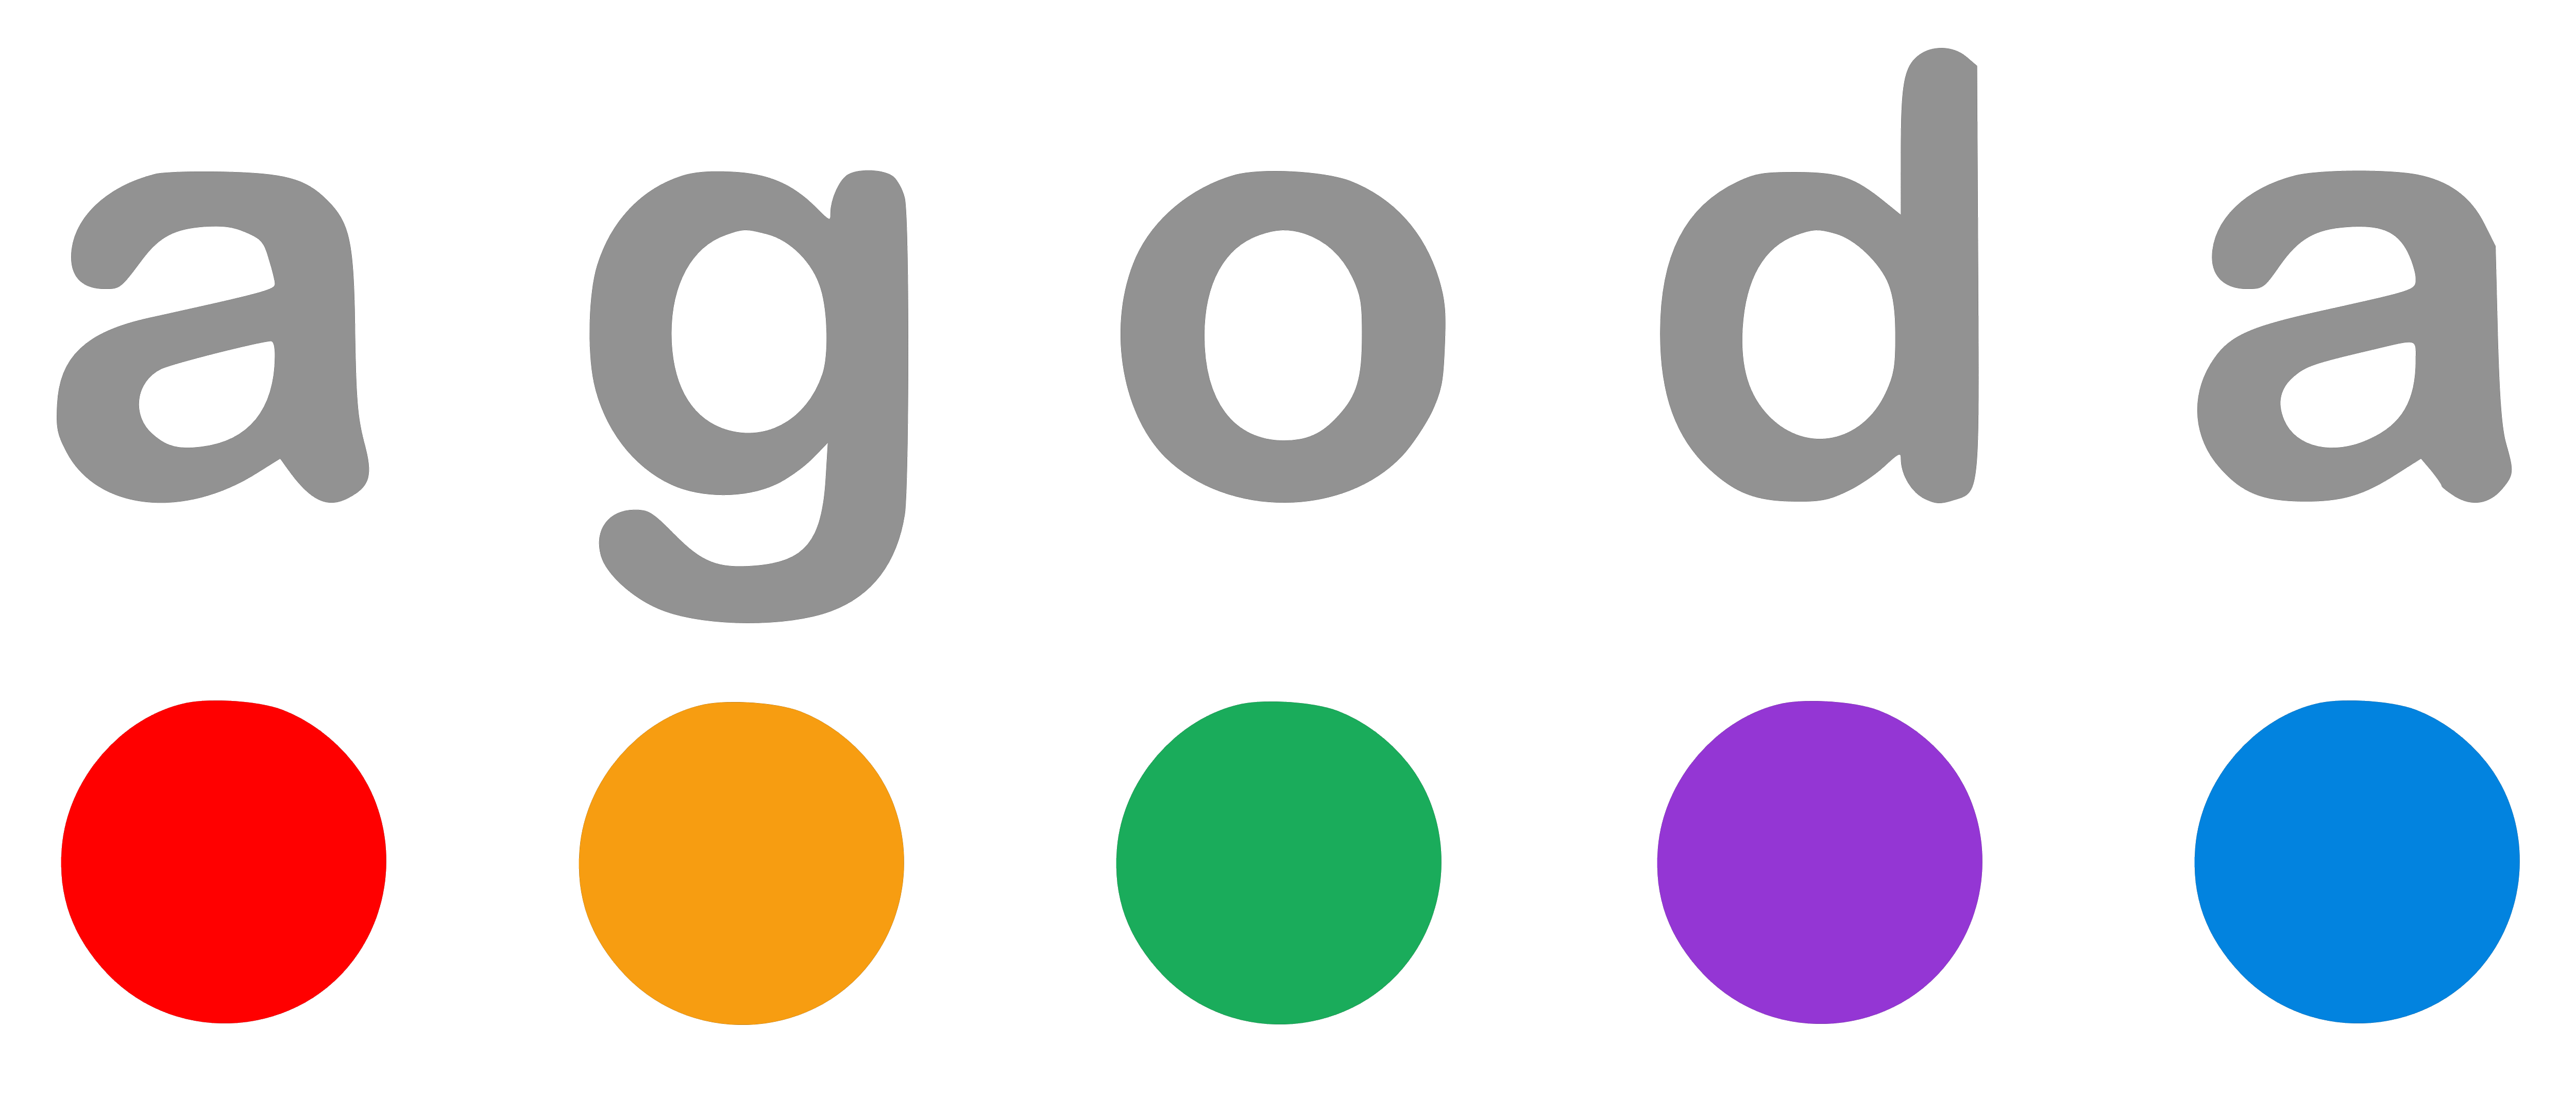 Image result for agoda logo